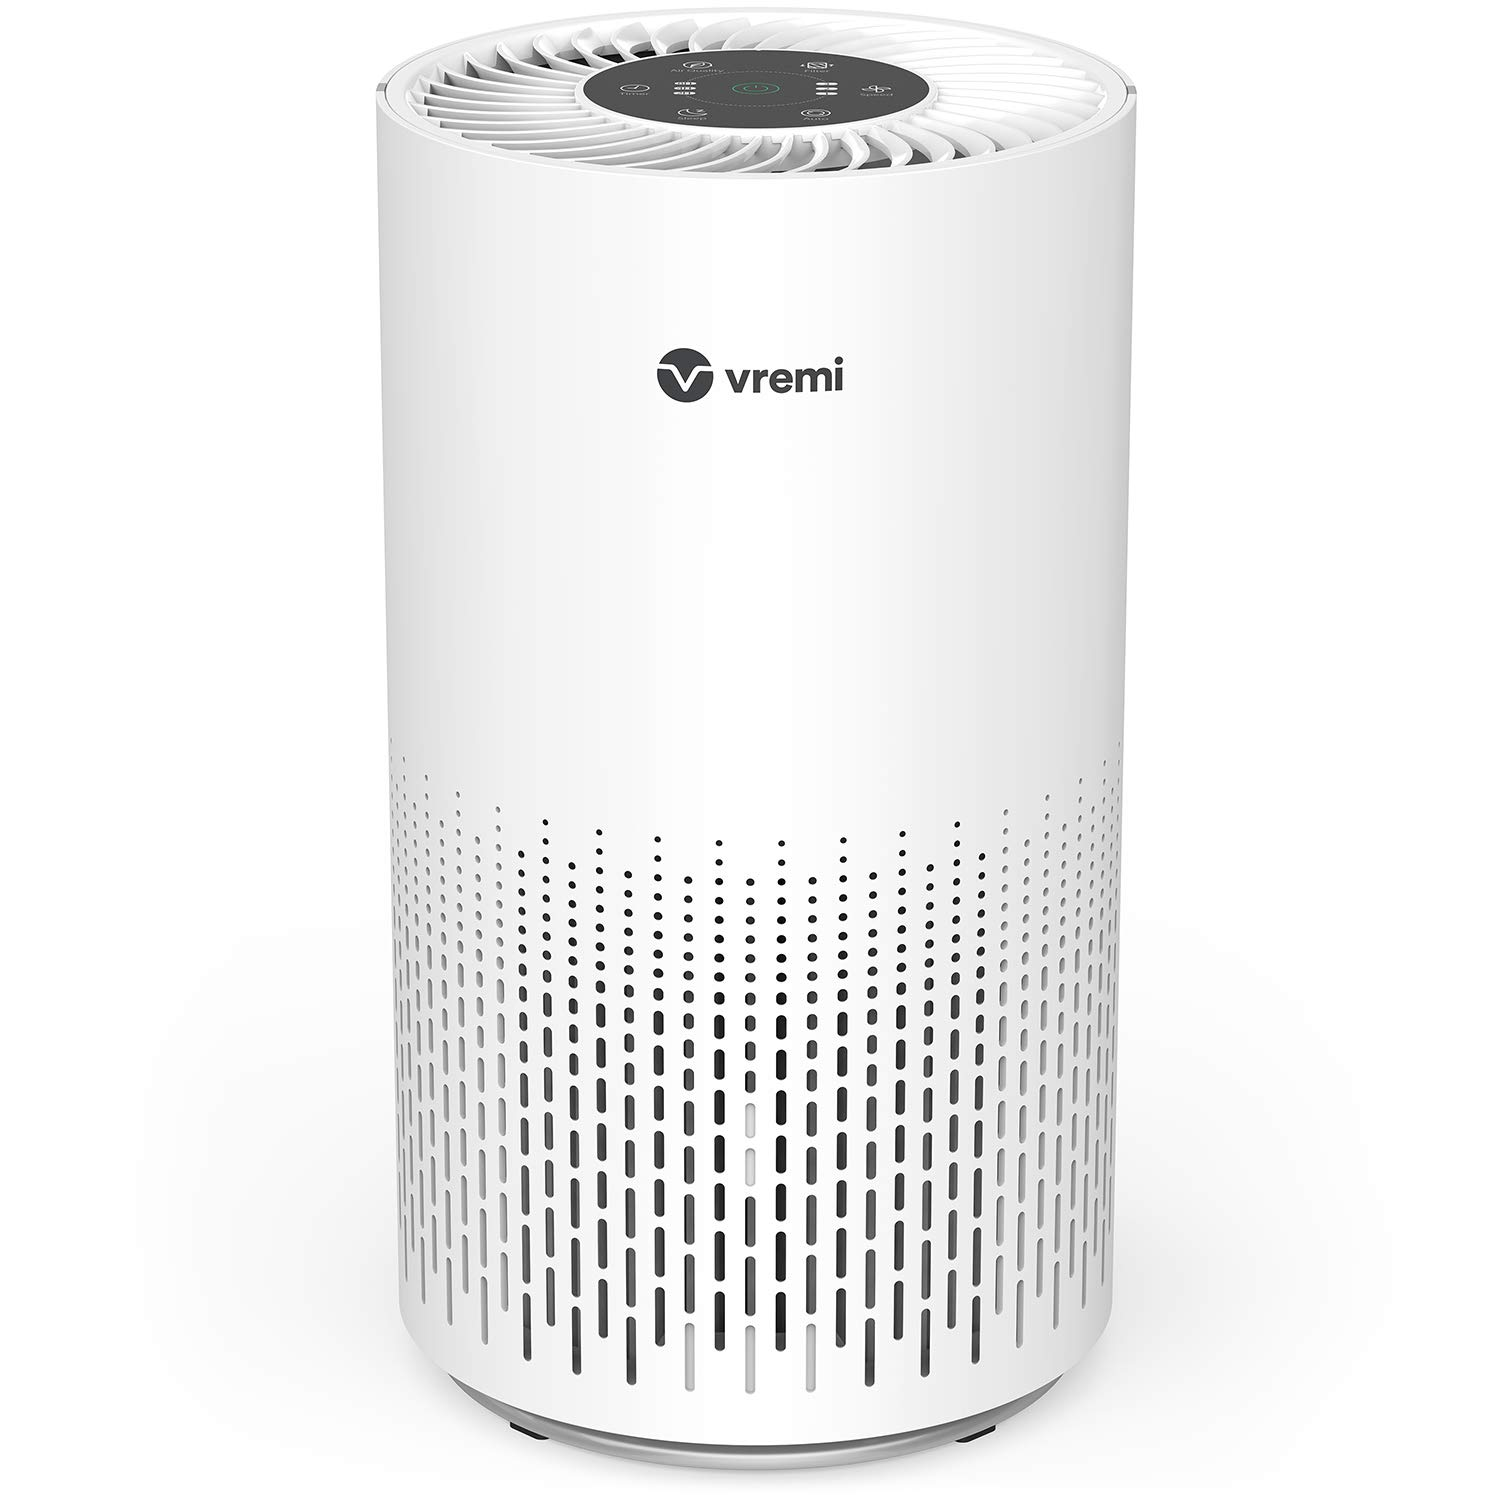 Vremi Large Room Home Air Purifier with True HEPA Filter - Automatically Senses and Removes up to 99.97% of Pollen, Pet Dander, Smoke Odors, Dust and Other Allergens